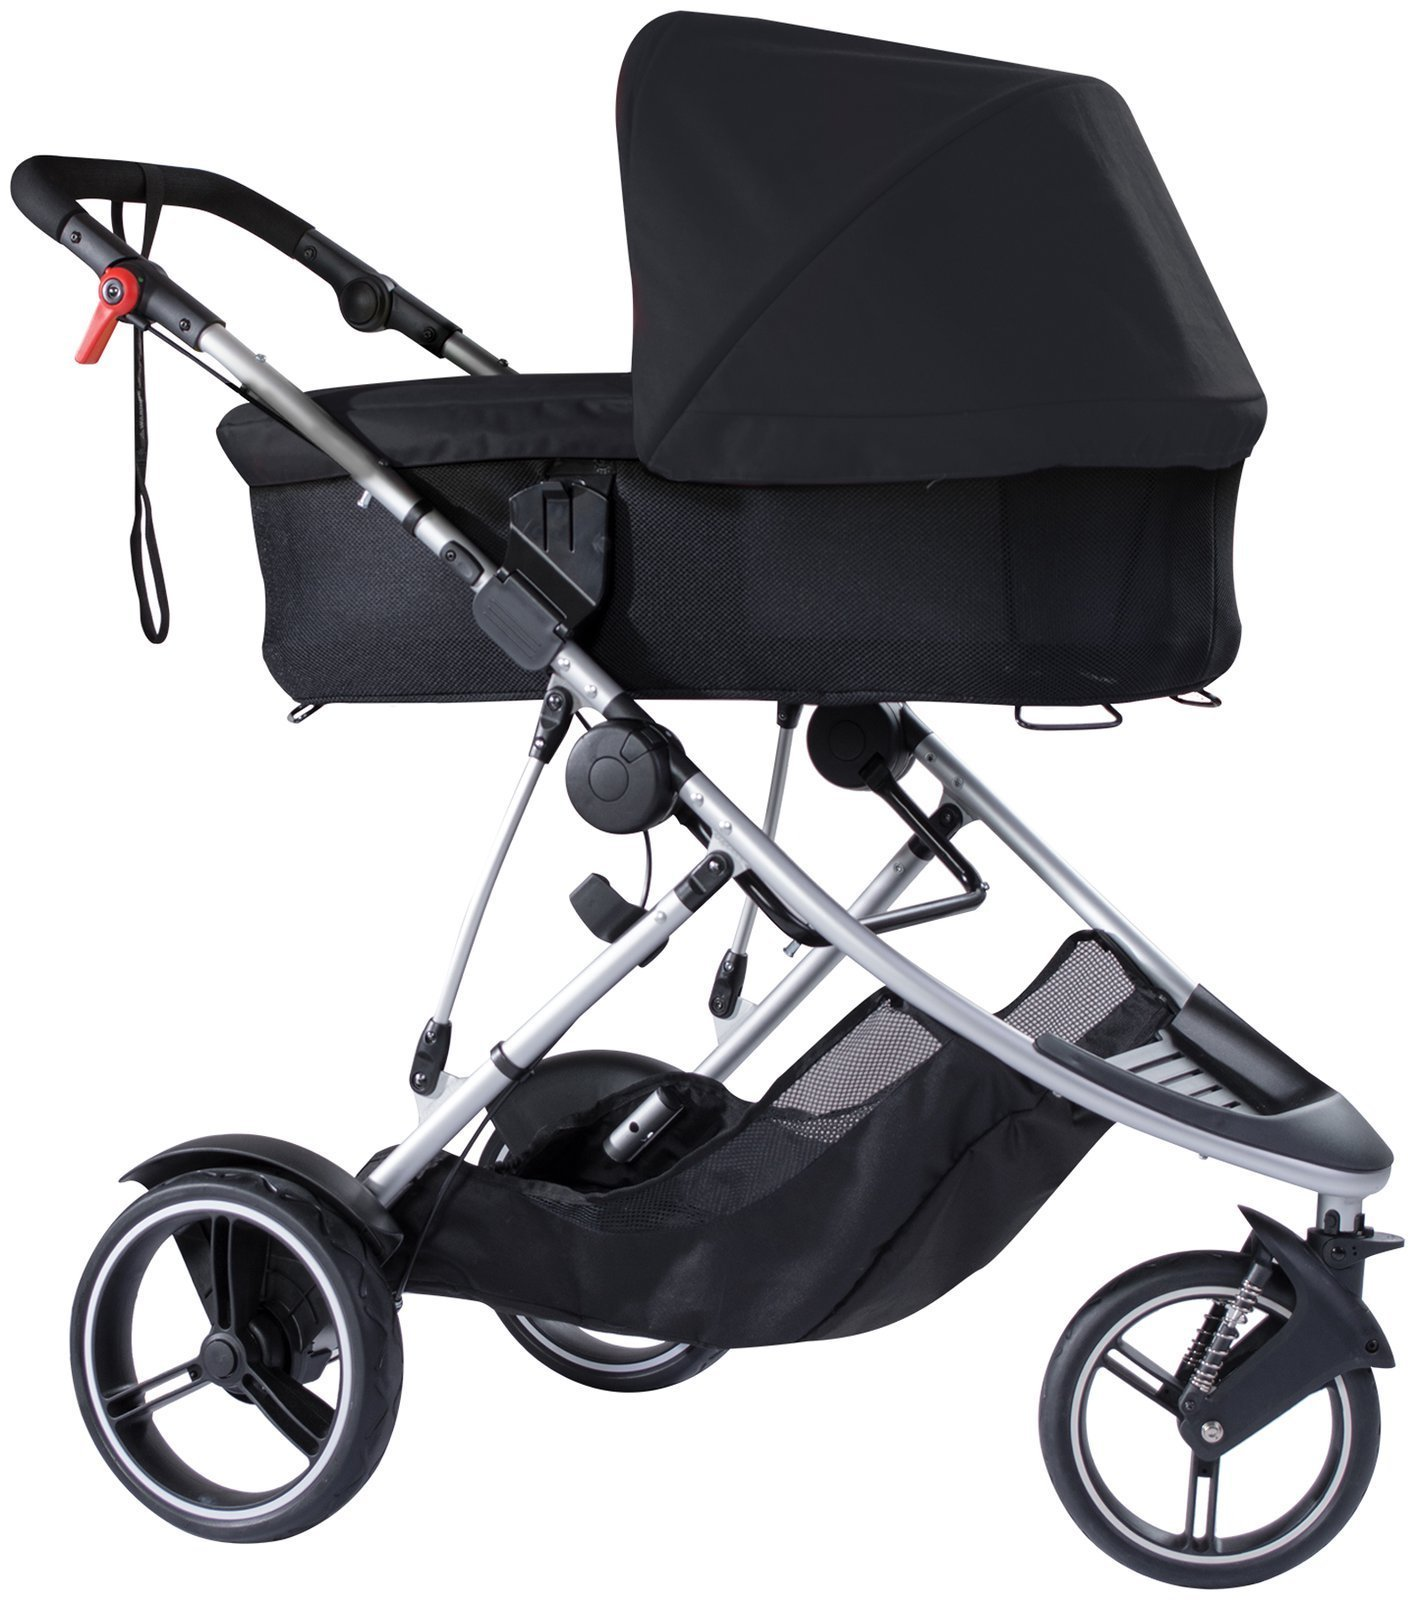 phil&teds Snug Carrycot for Dash Stroller, Black by phil&teds (Image #2)